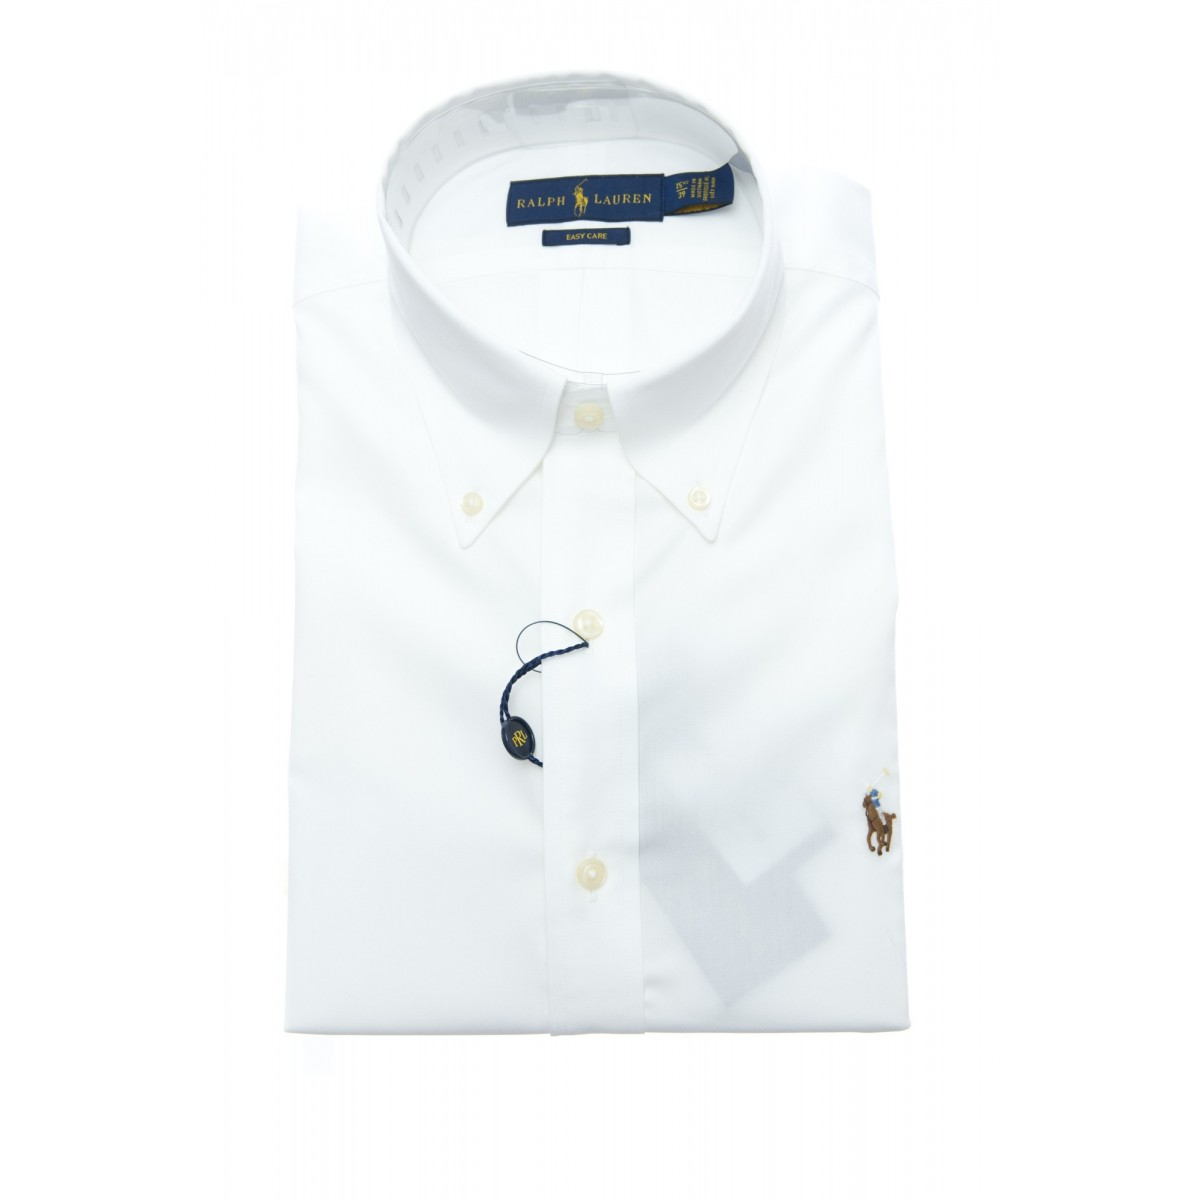 Camicia Uomo - 650217 002 camicia pin point custom fit